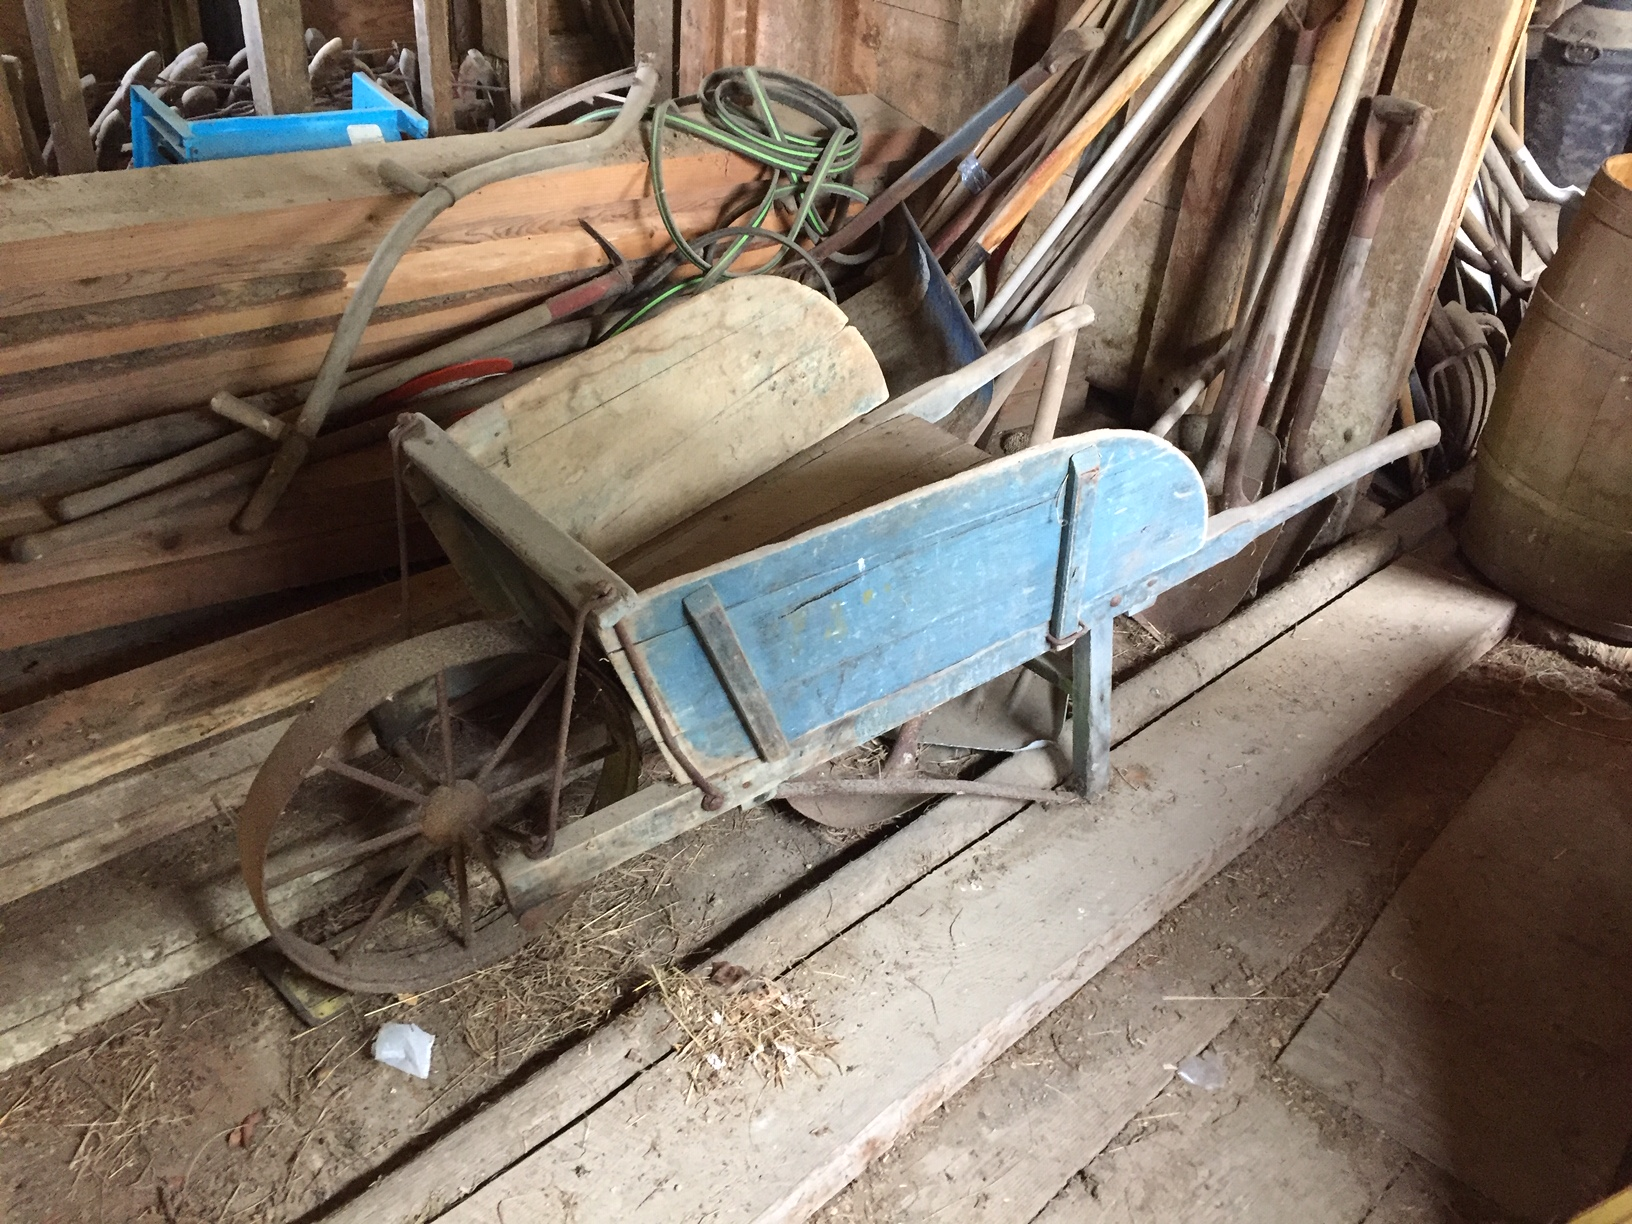 Vintage Items in Barn for Sale in Vermont